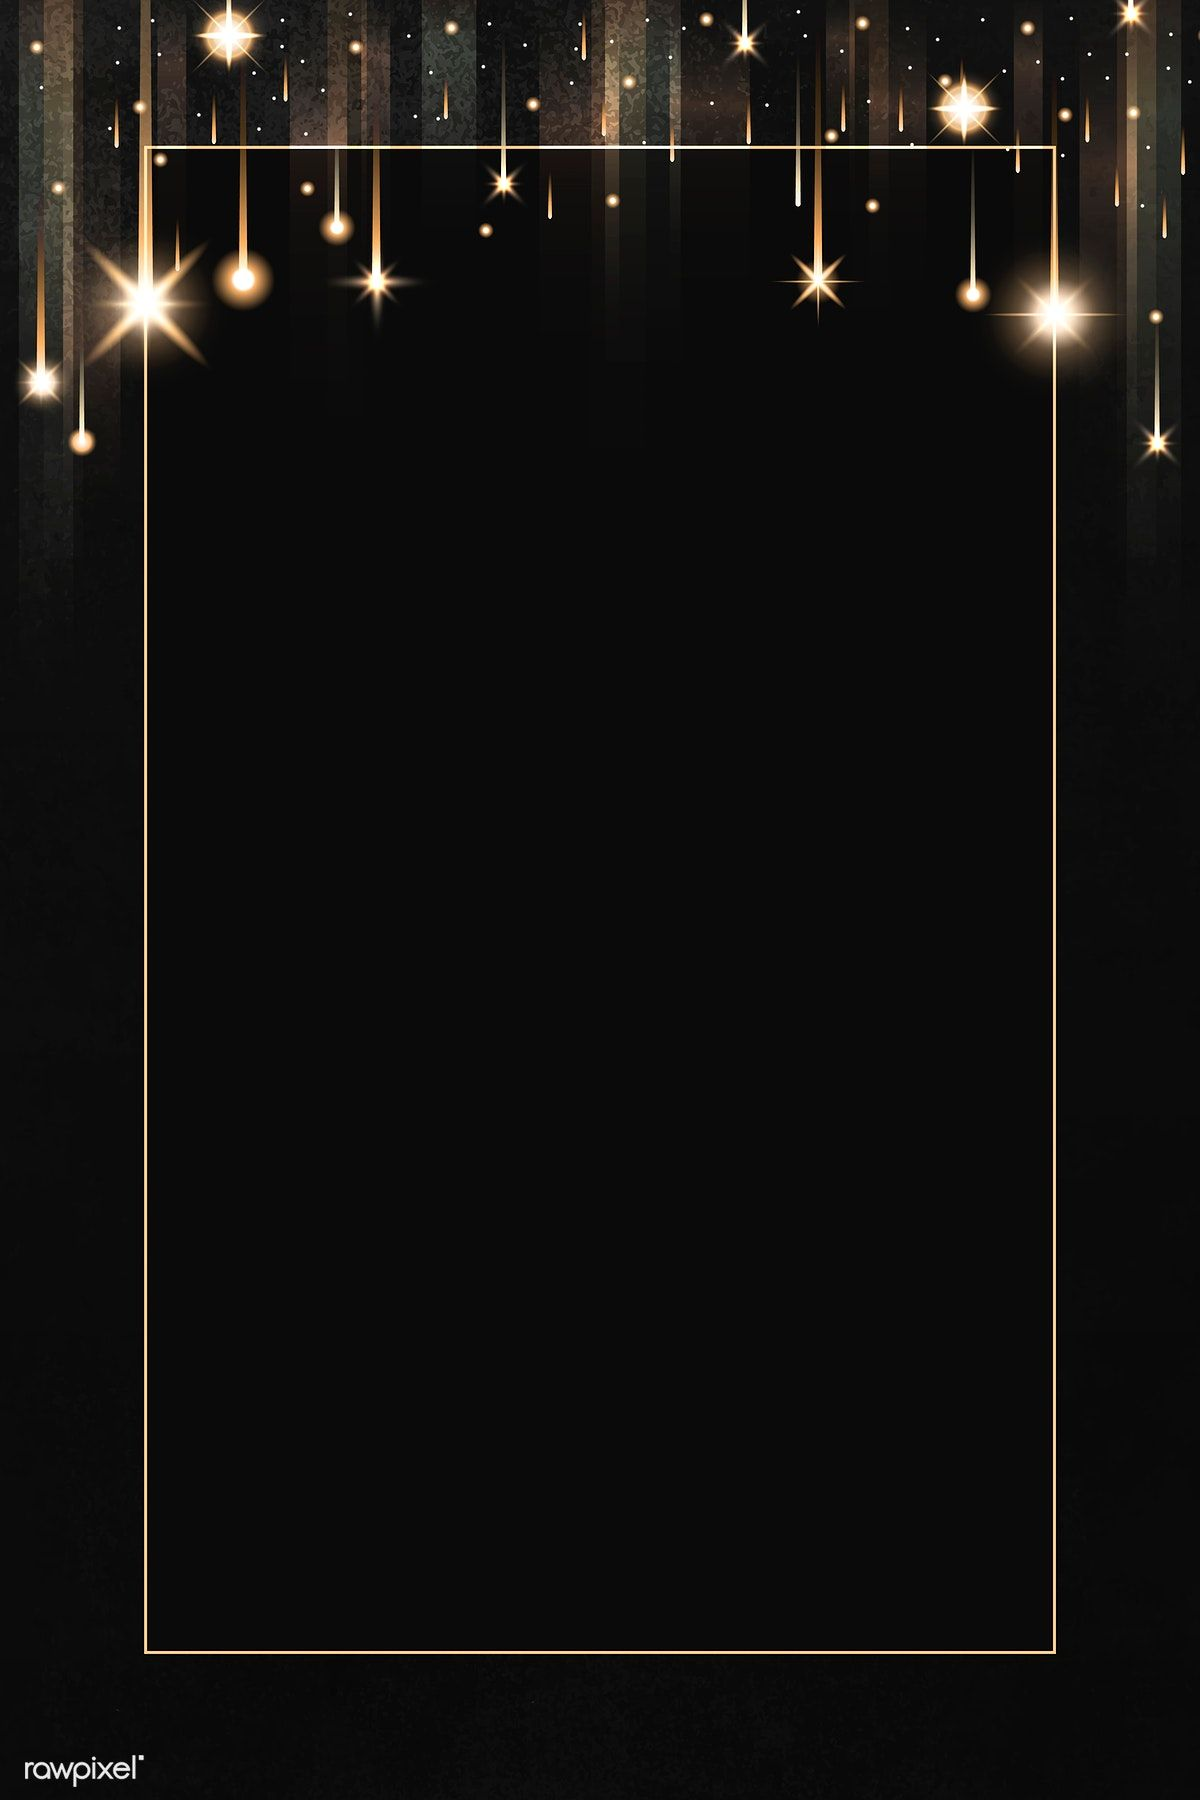 Get Good Black Wallpaper Iphone Glitter Sparkle for iPhone 11 Pro Today